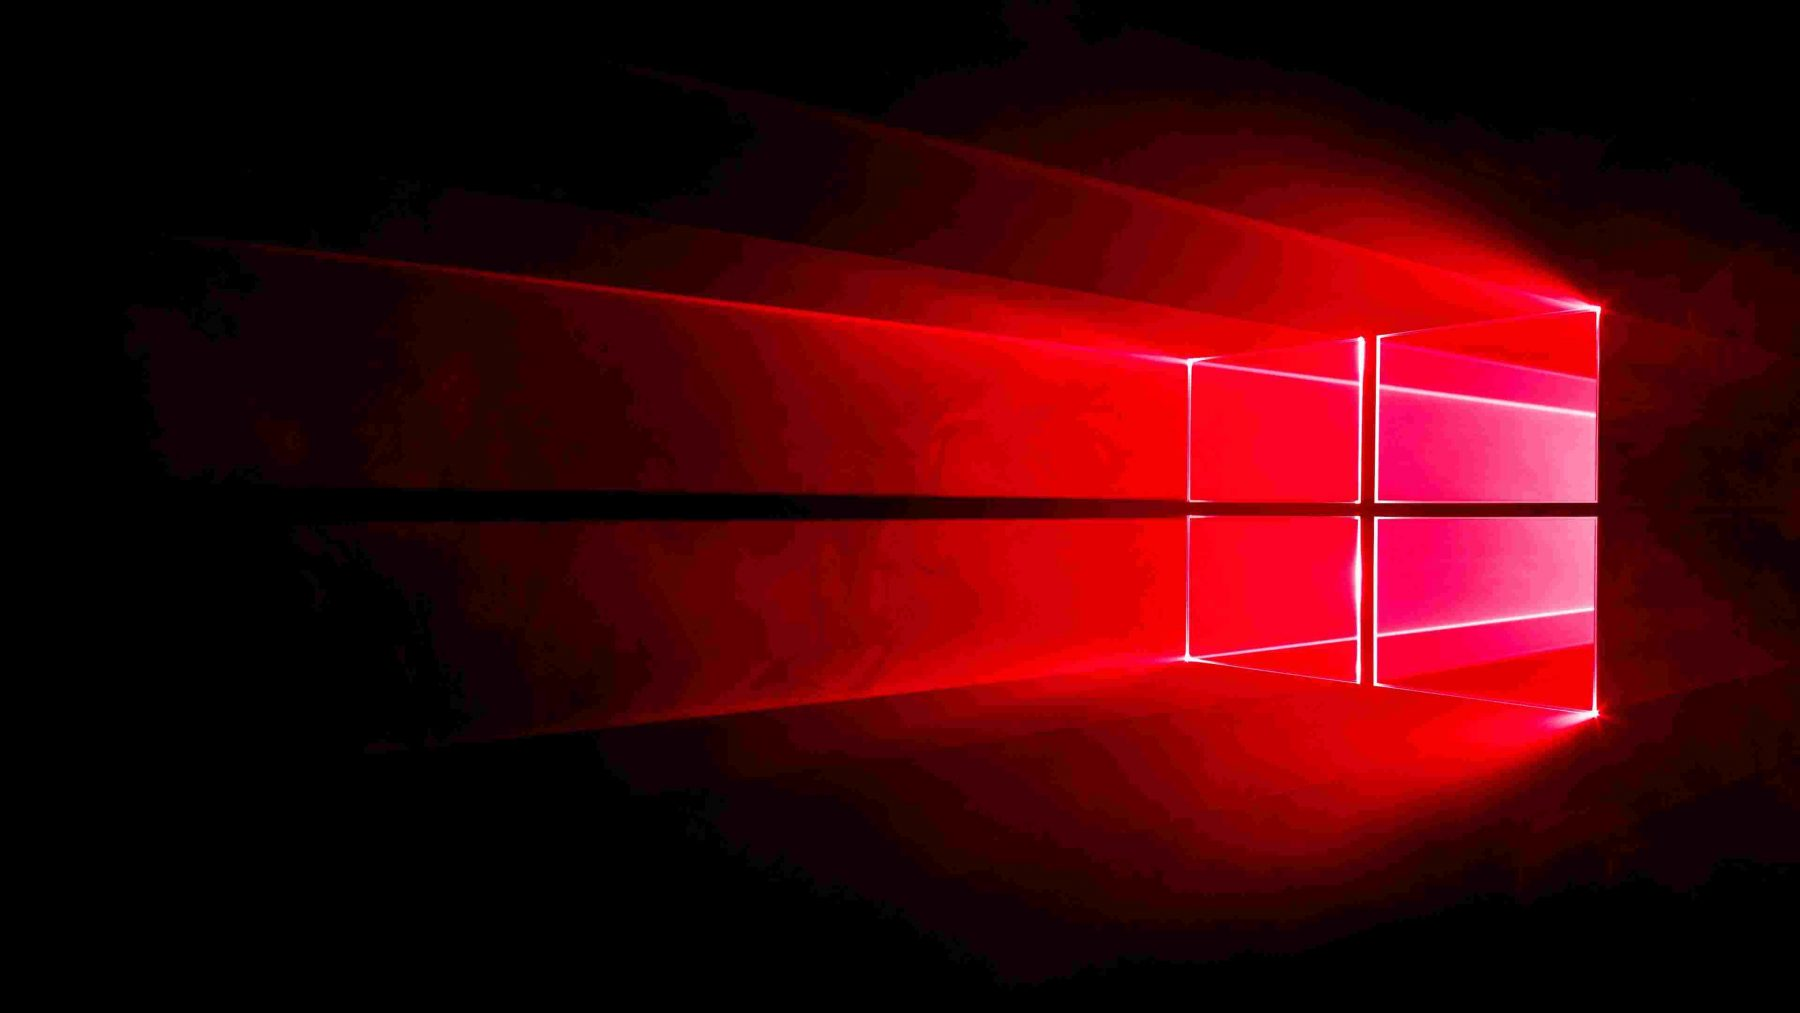 windows-10-pc-and-mobile-to-get-new-live-tile-animations-in-next-redstone-builds-501194-2-compressed